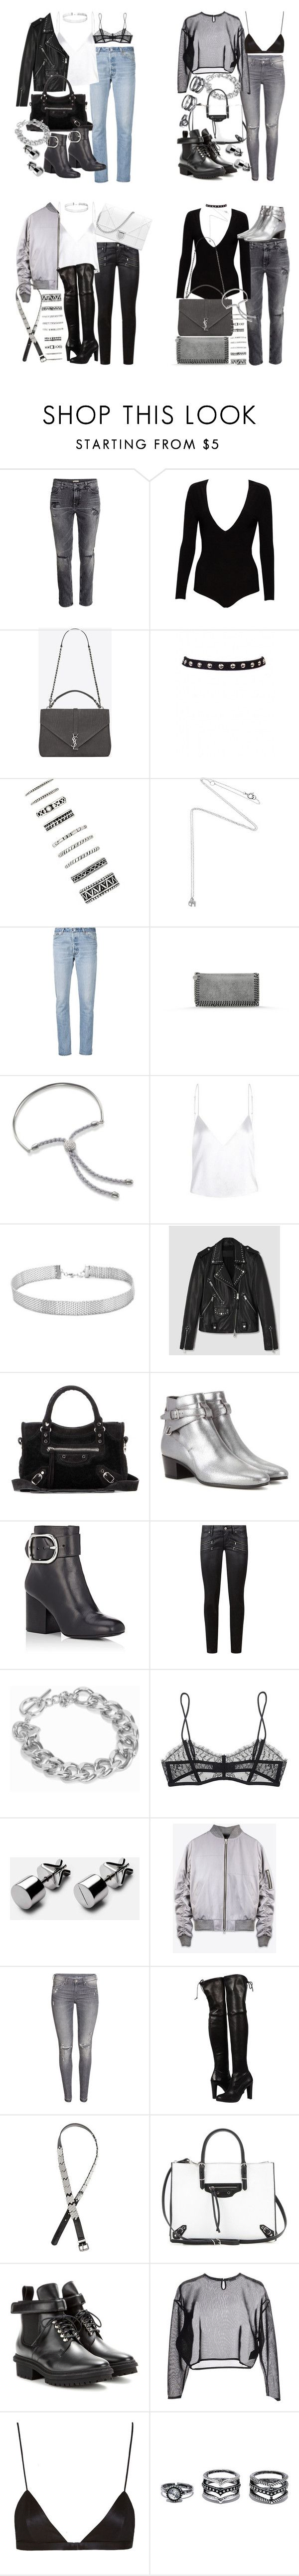 """""""concert looks"""" by florencia95 ❤ liked on Polyvore featuring Alice + Olivia, Yves Saint Laurent, Forever 21, Estella Bartlett, RE/DONE, STELLA McCARTNEY, Monica Vinader, AllSaints, Balenciaga and Alexander Wang"""